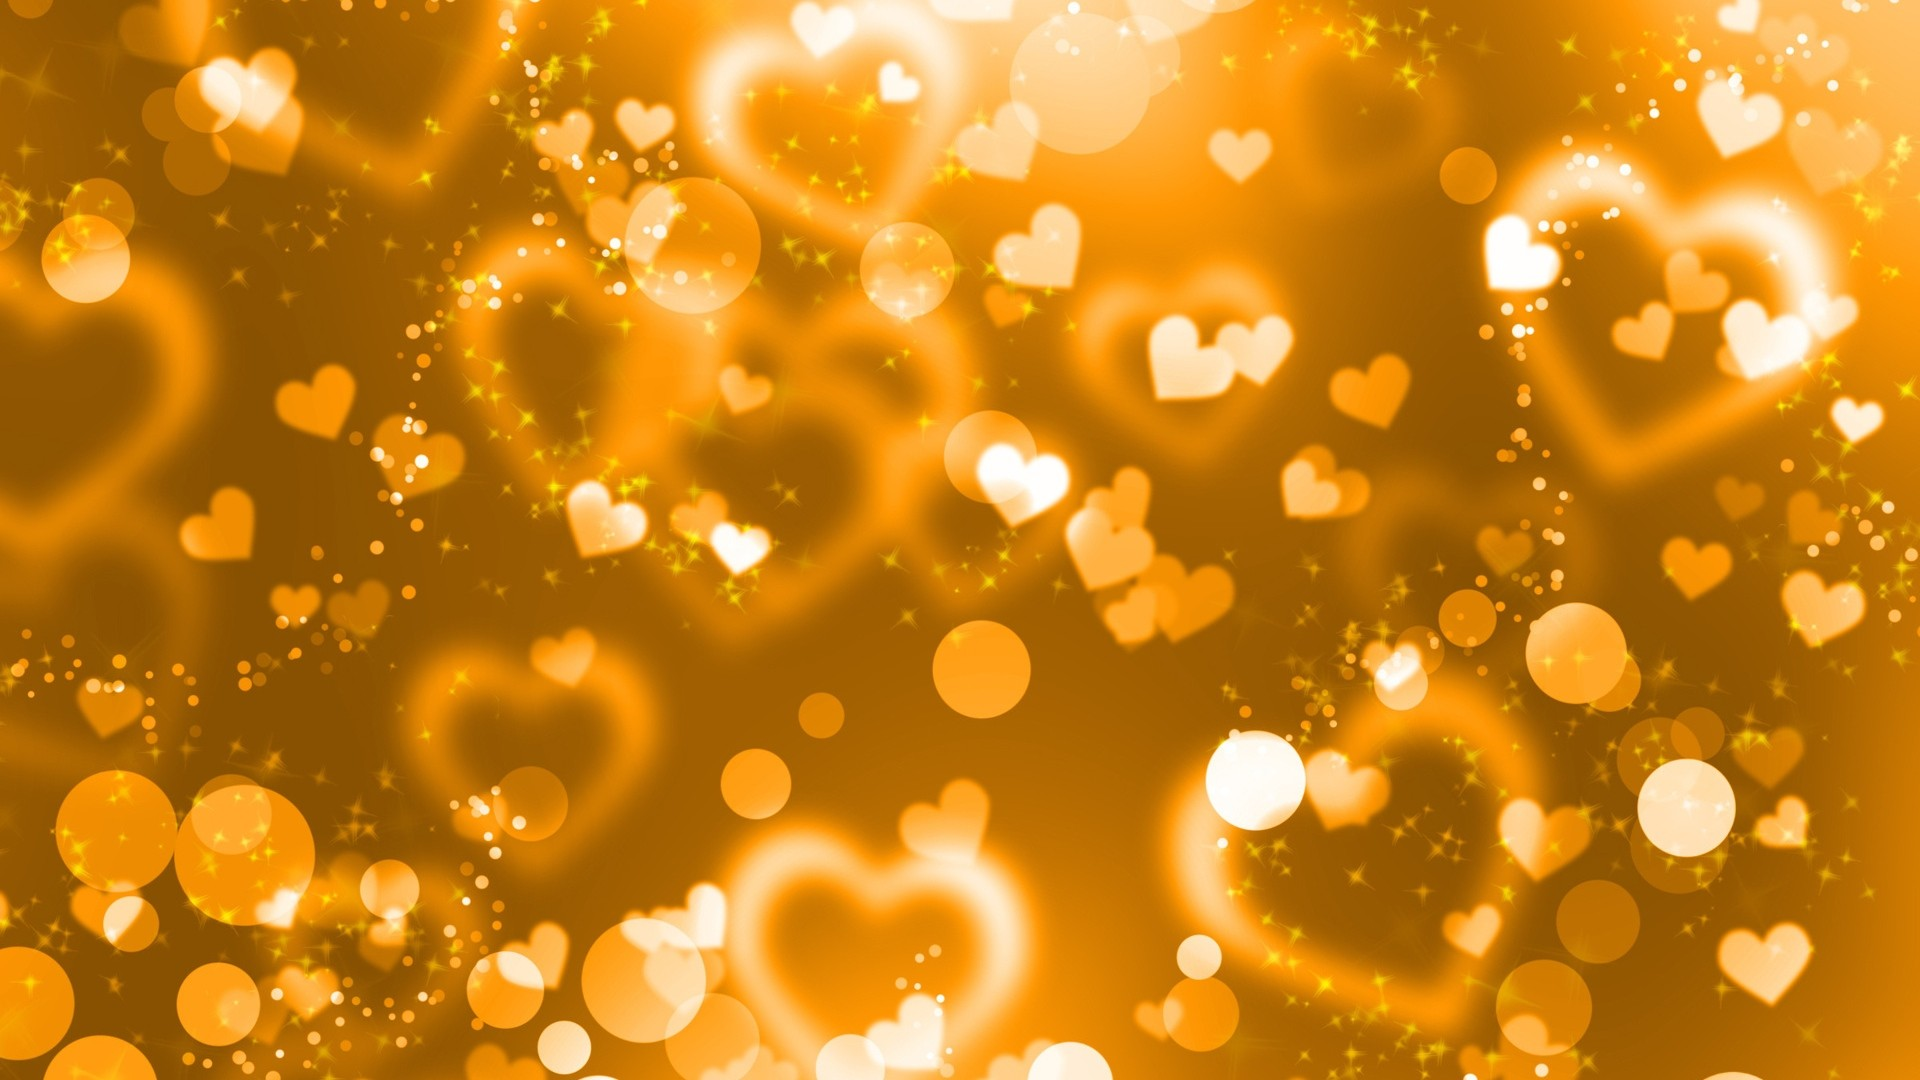 1920x1080 Preview wallpaper glare, hearts, lights, glitter, gold